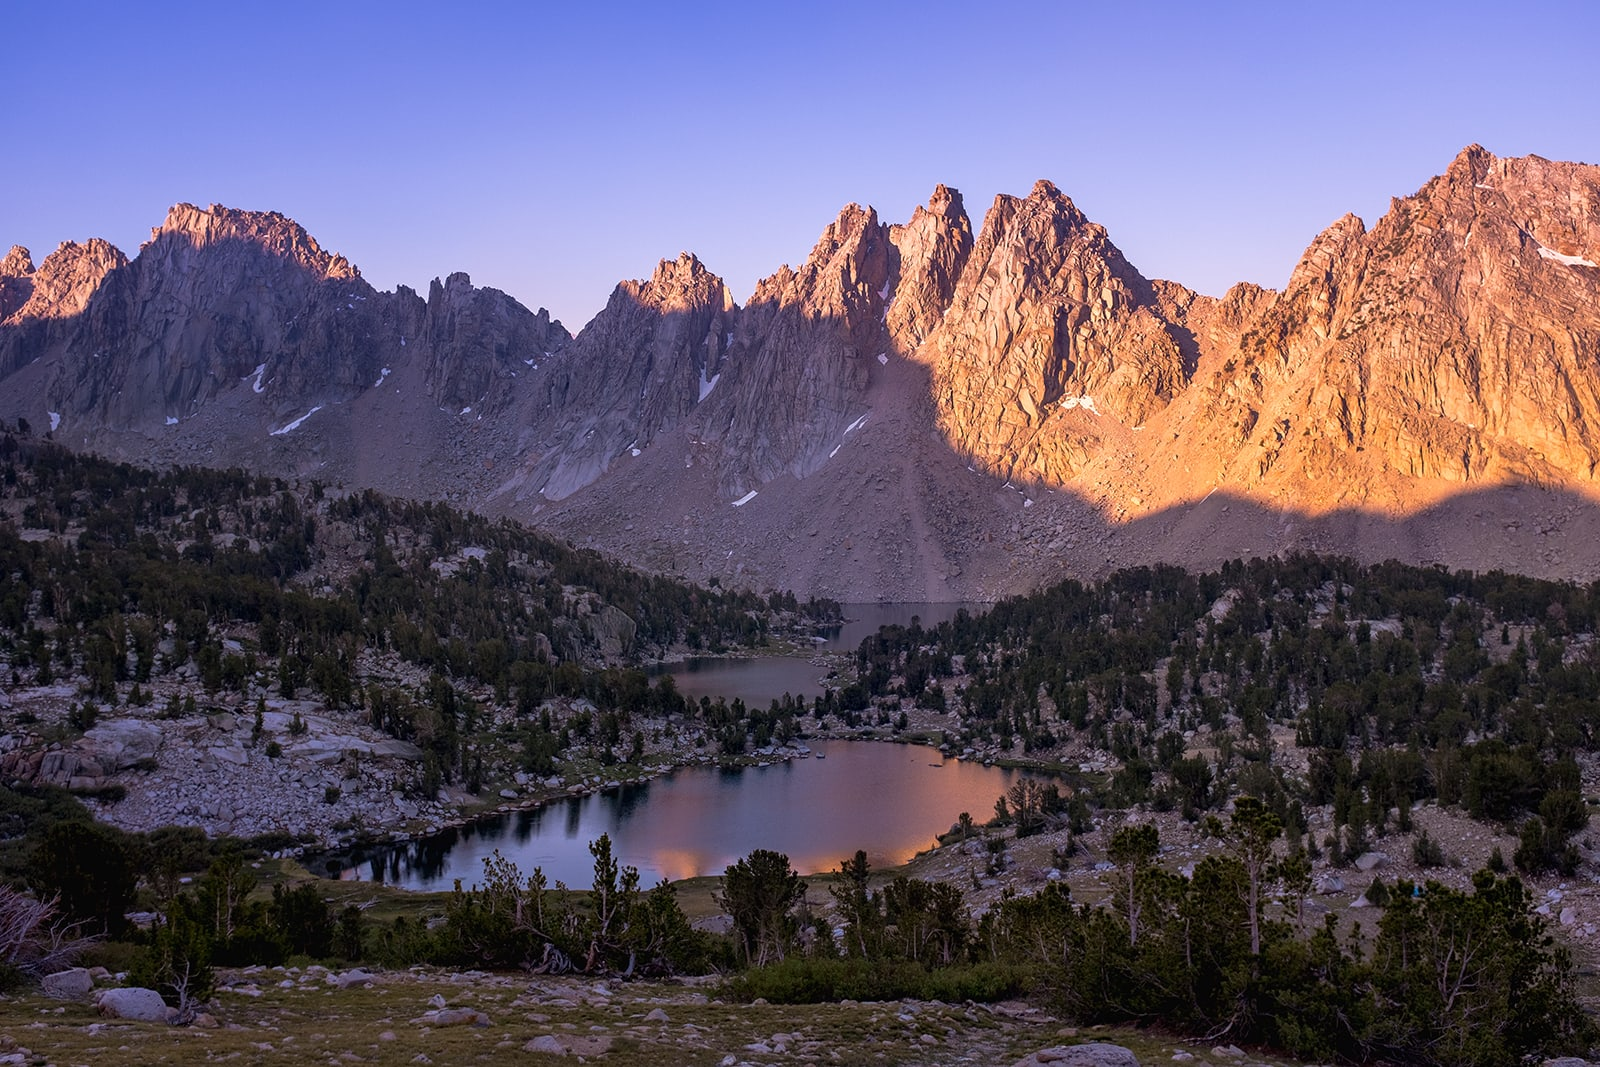 The sun crests the horizon to reveal the peaks near Kearsarge Pass.